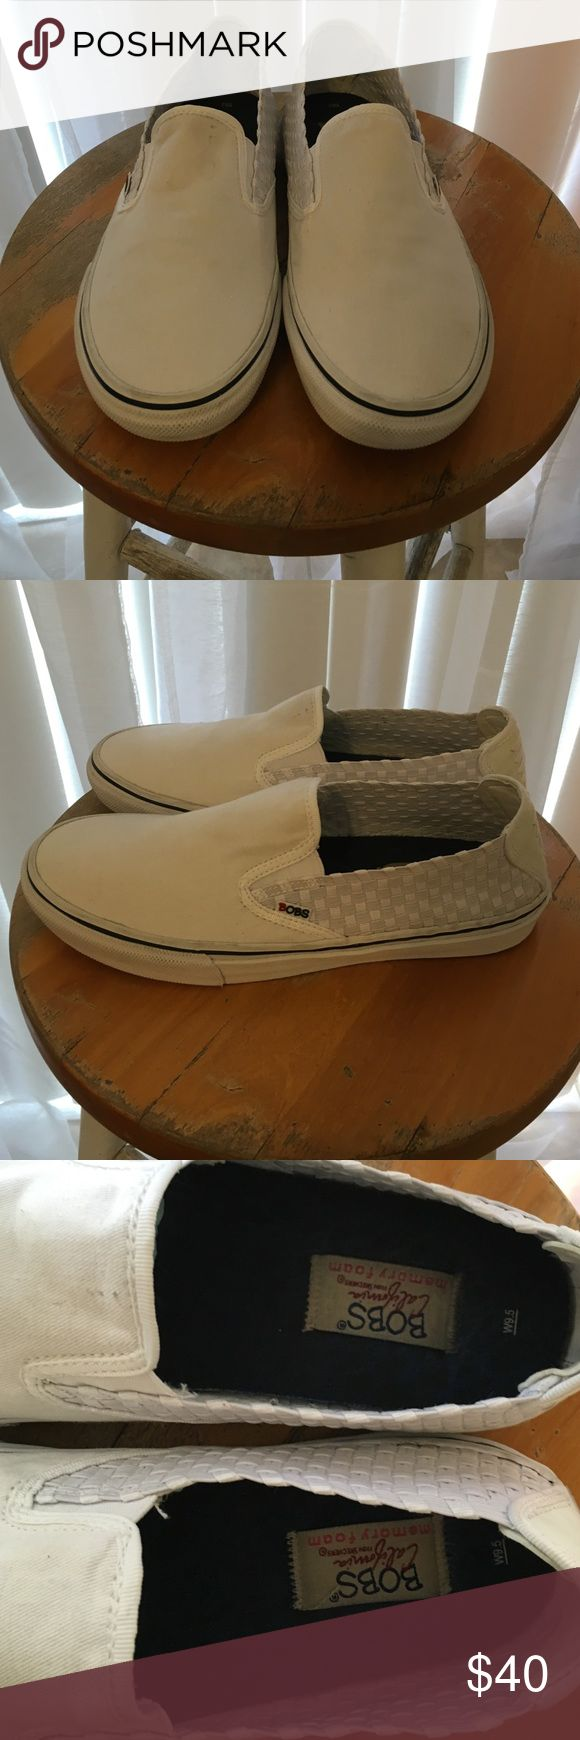 Vans look alike by Bobs from Skechers EUC White canvas